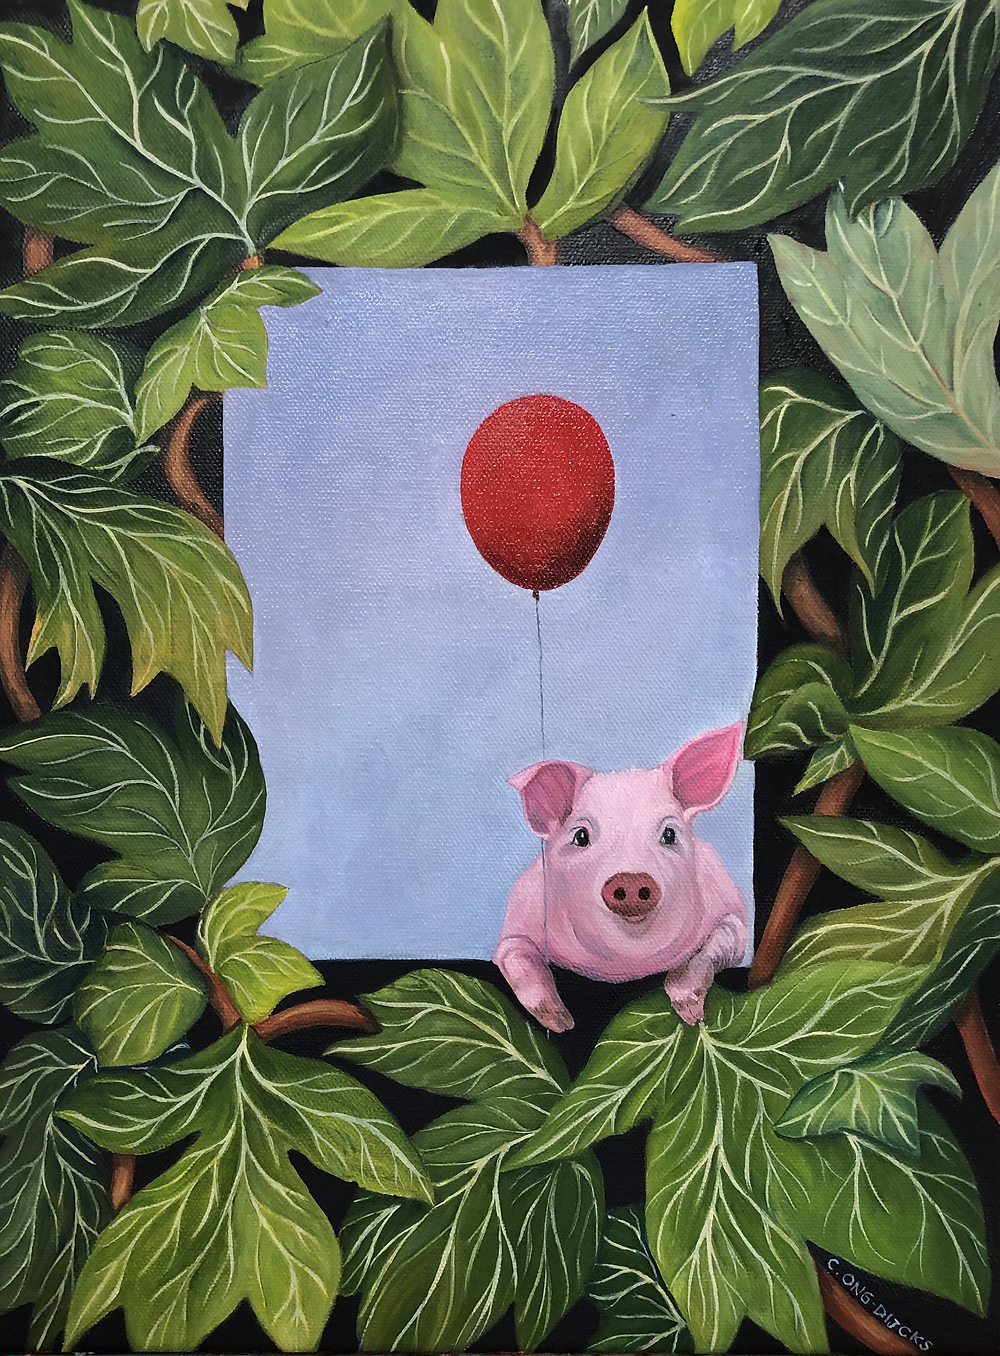 My sweet little piggy with her Red Balloon in Peony Leaves